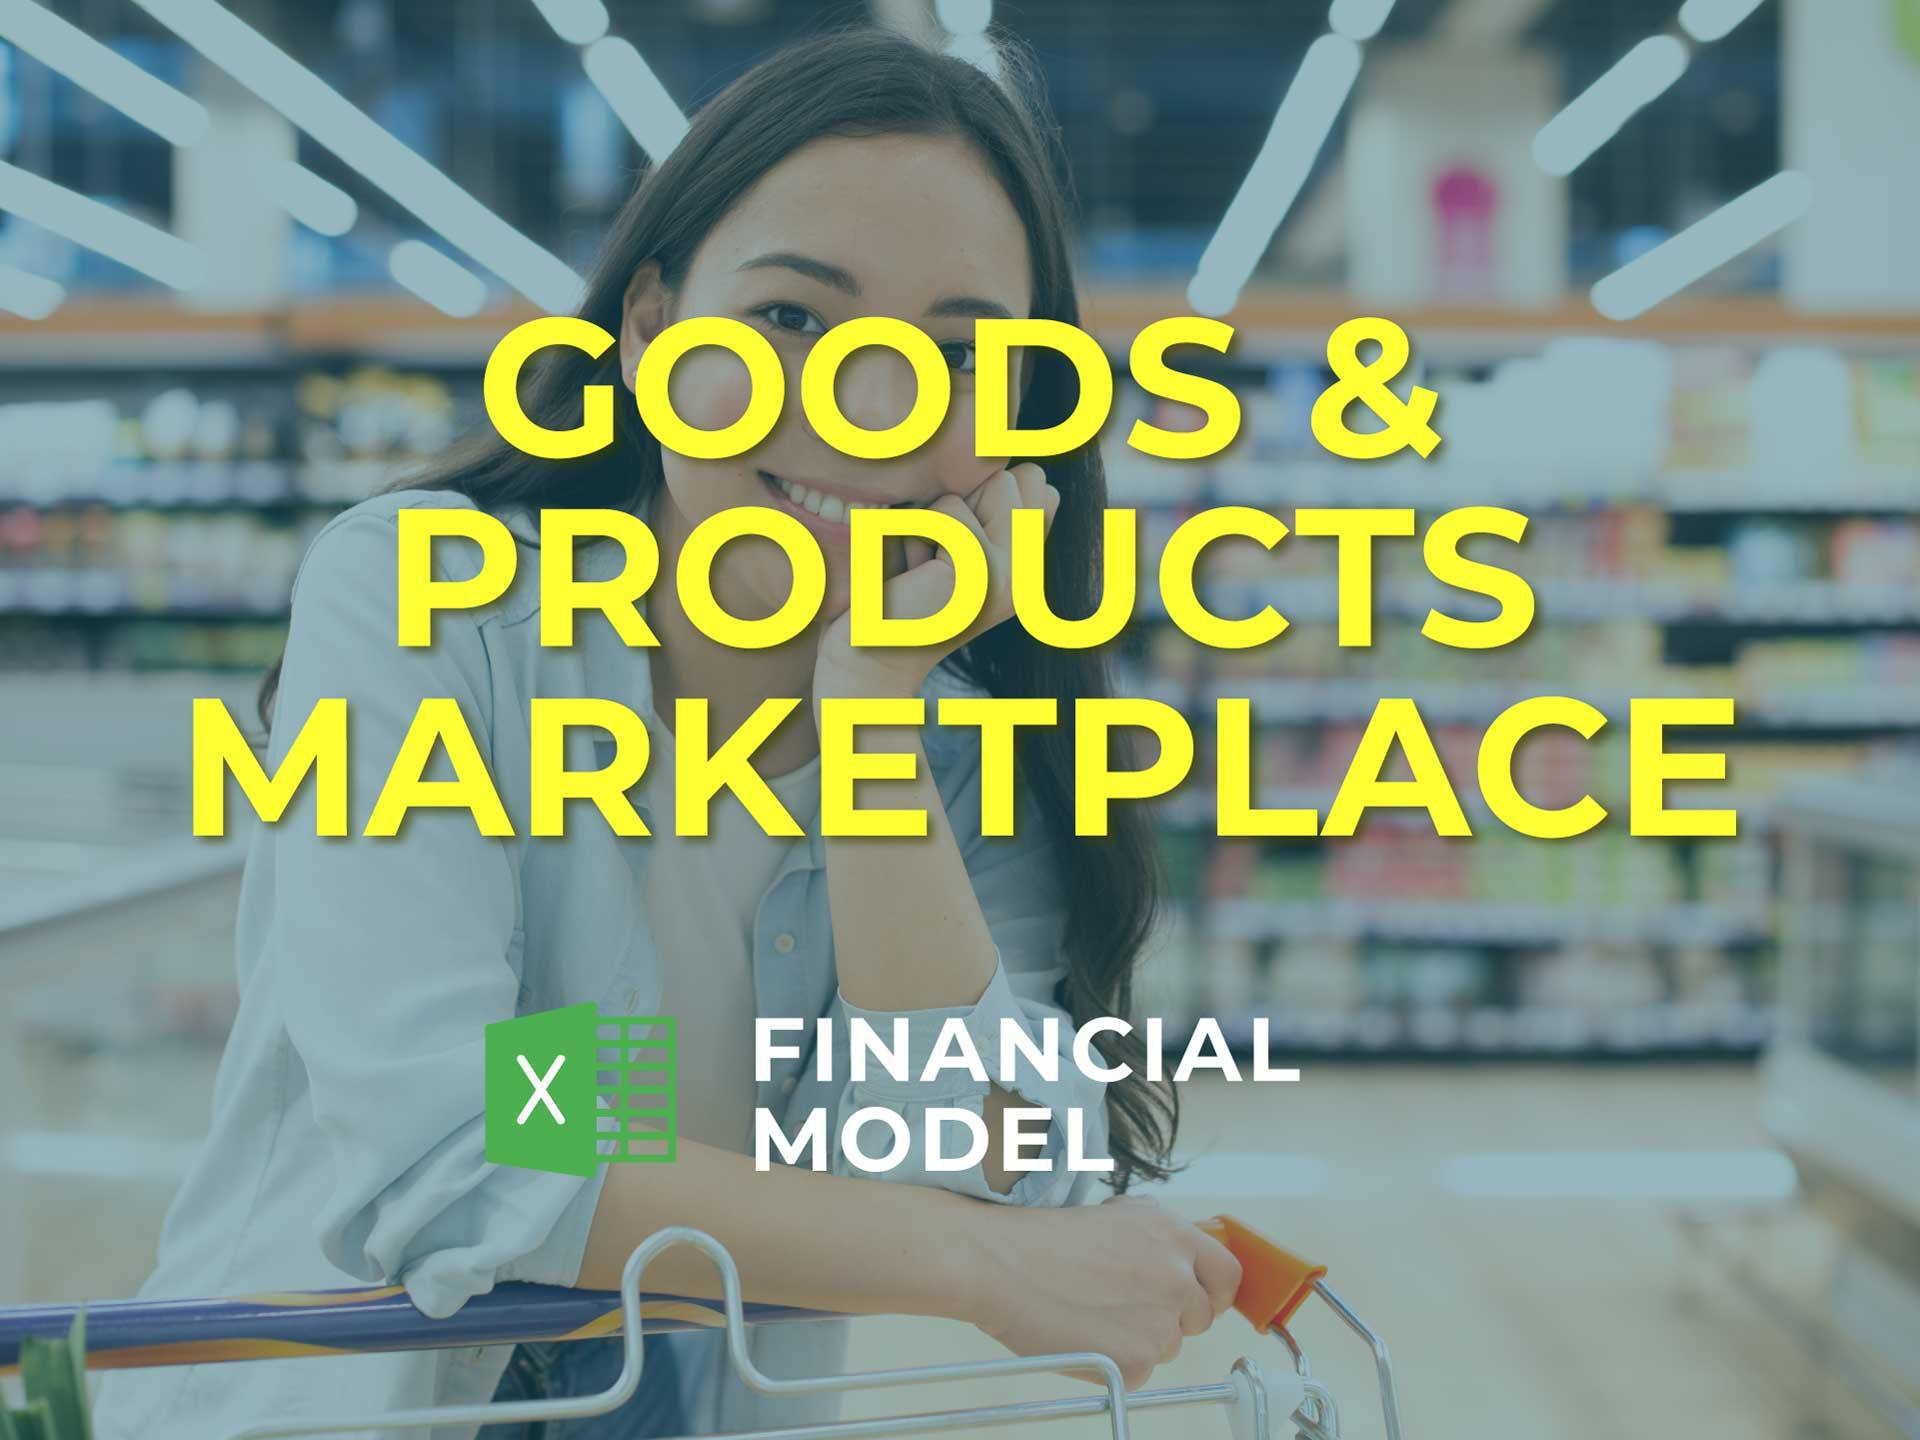 Goods & Products Marketplace Financial Model Excel Template - Templarket -  Business Templates Marketplace